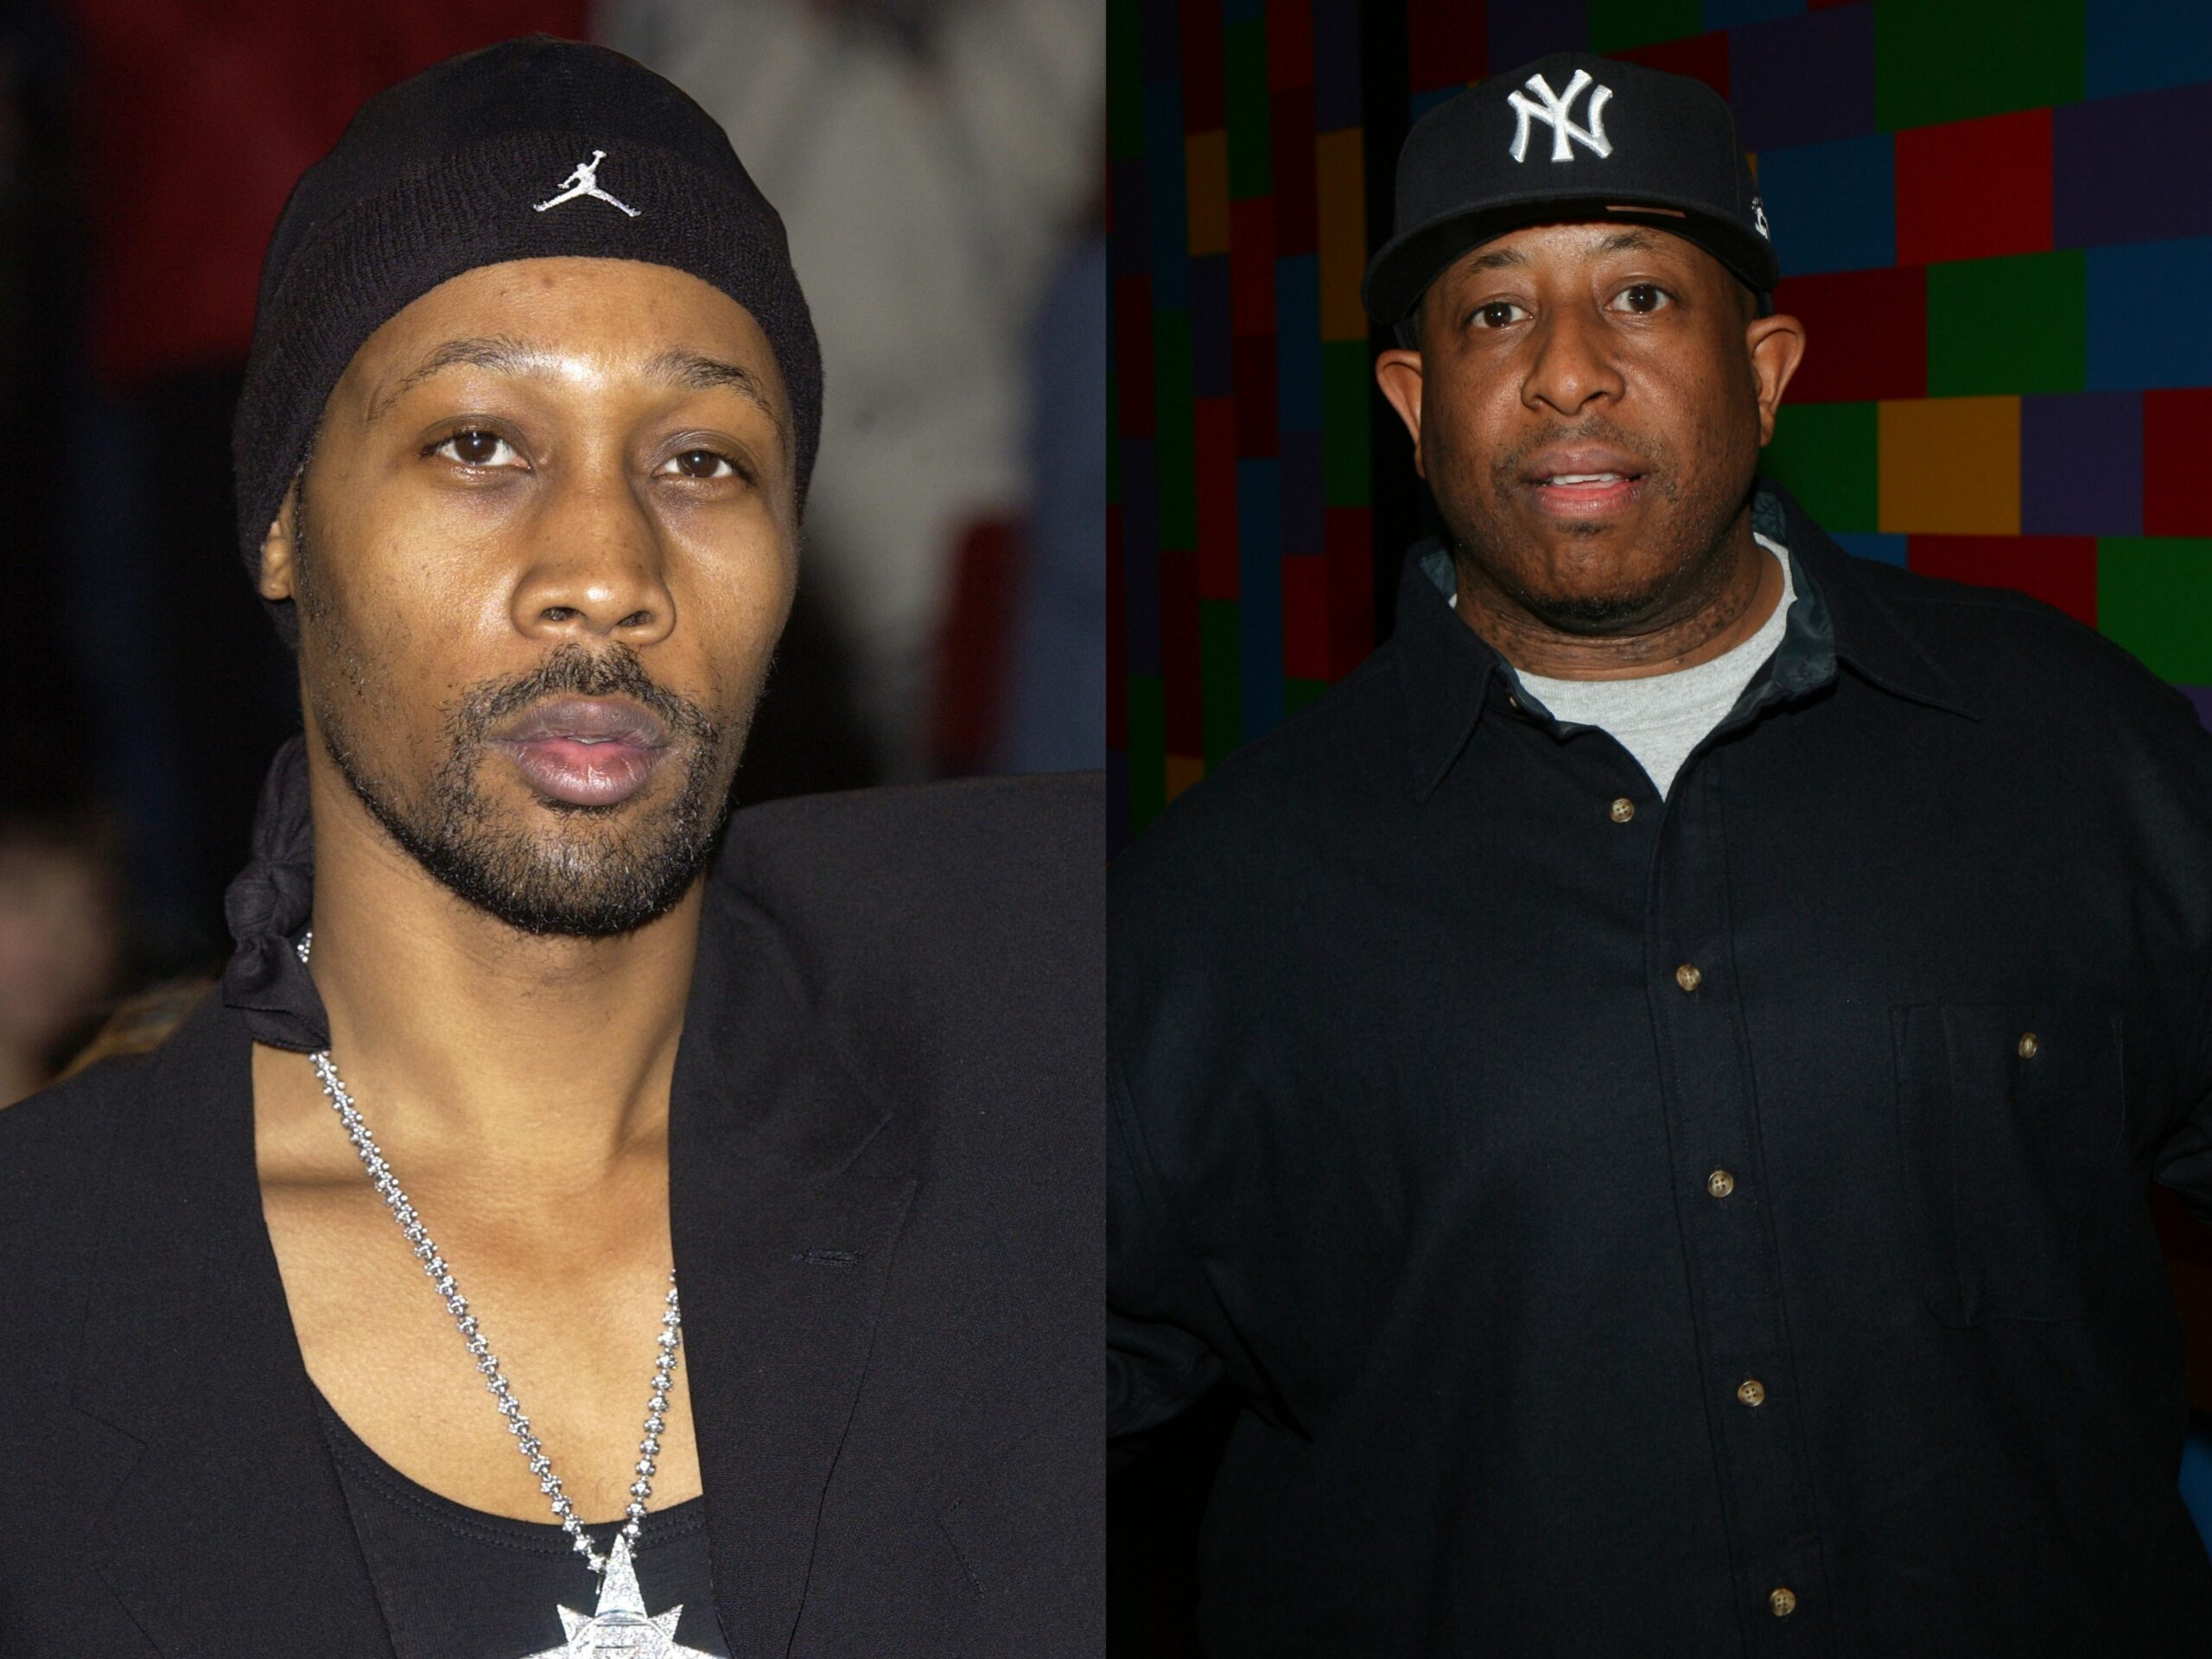 RZA And DJ Premier To Go Head-To-Head In Battle Of The Beats